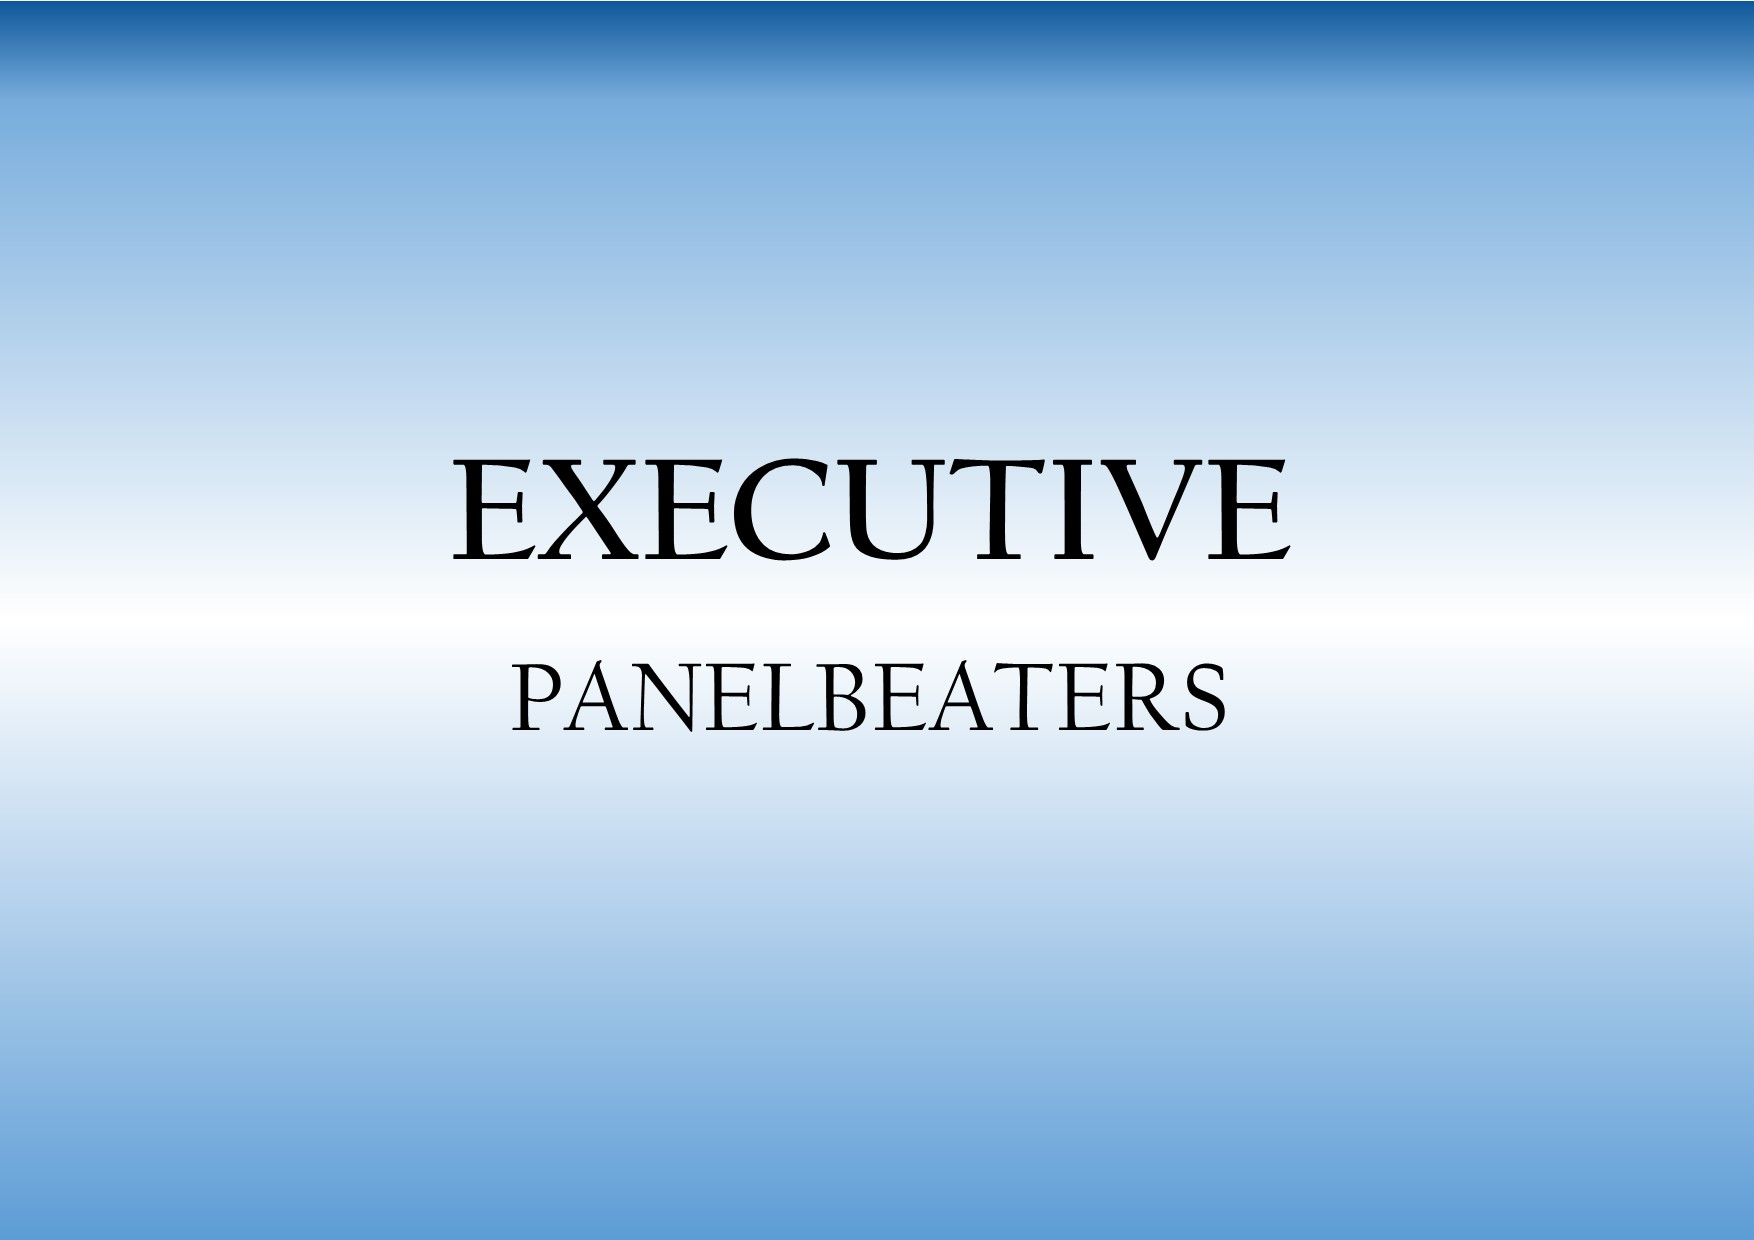 Logo of Executive Panelbeaters